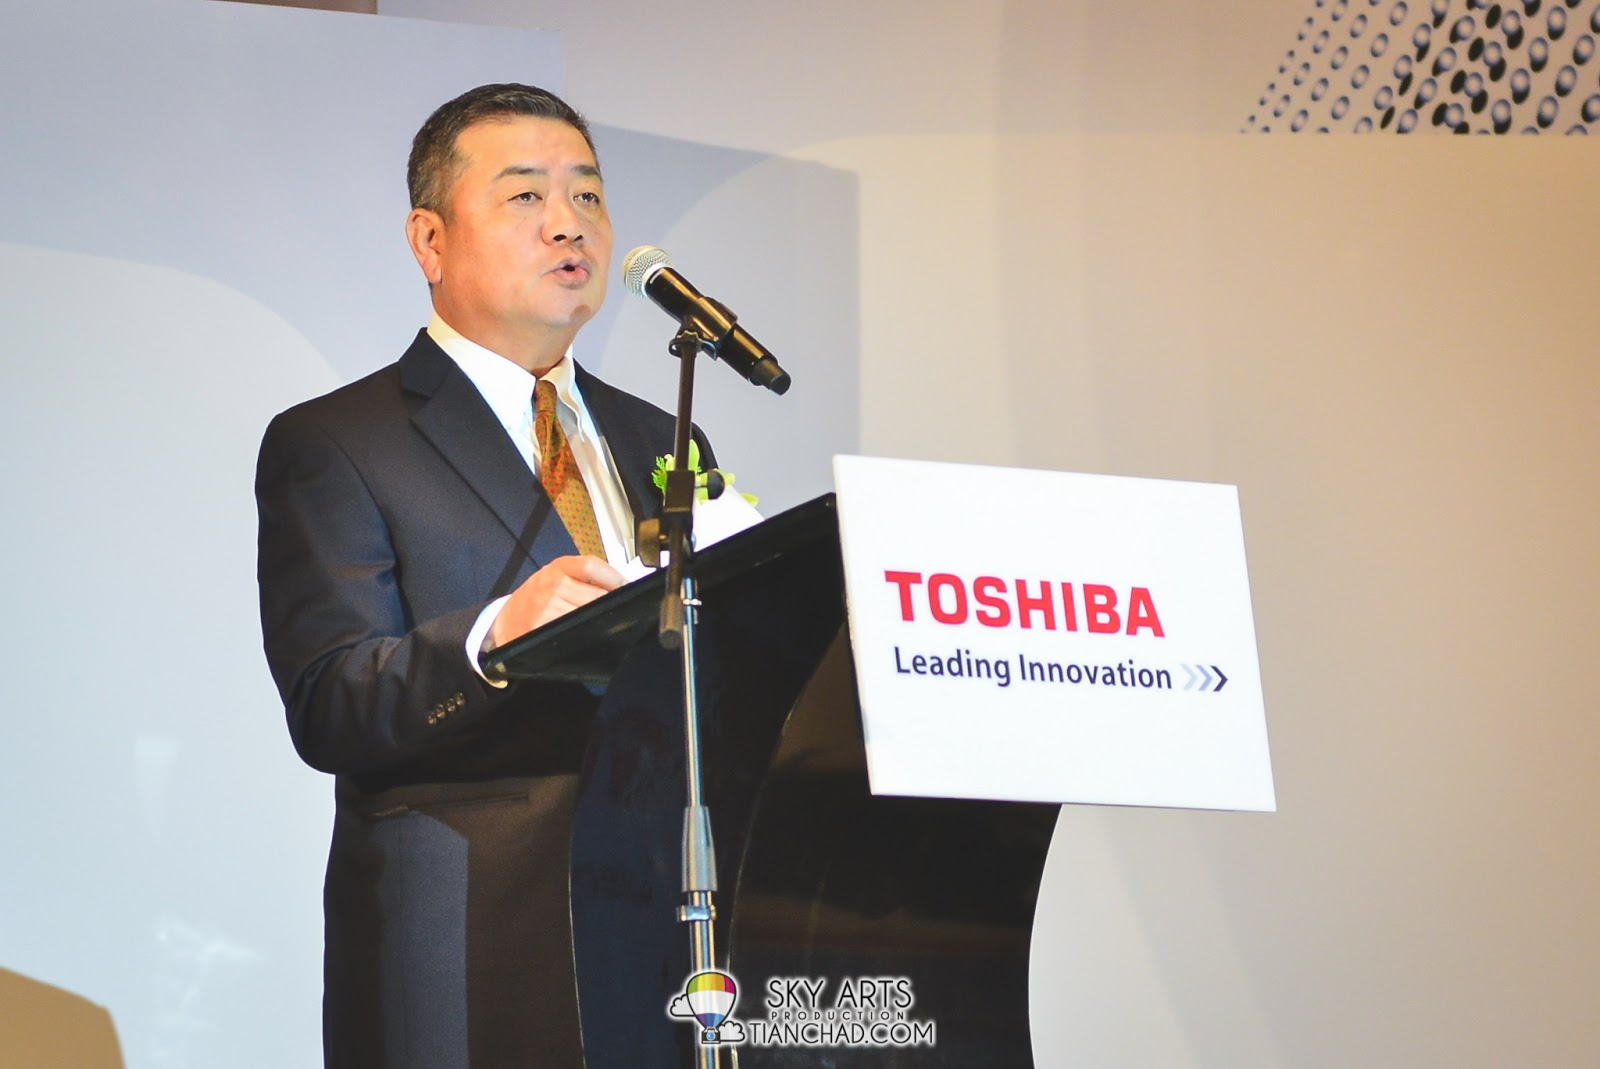 Mr Hitoshi Katayama, the Managing Director of Toshiba Sales and Services Sdn Bhd giving speech